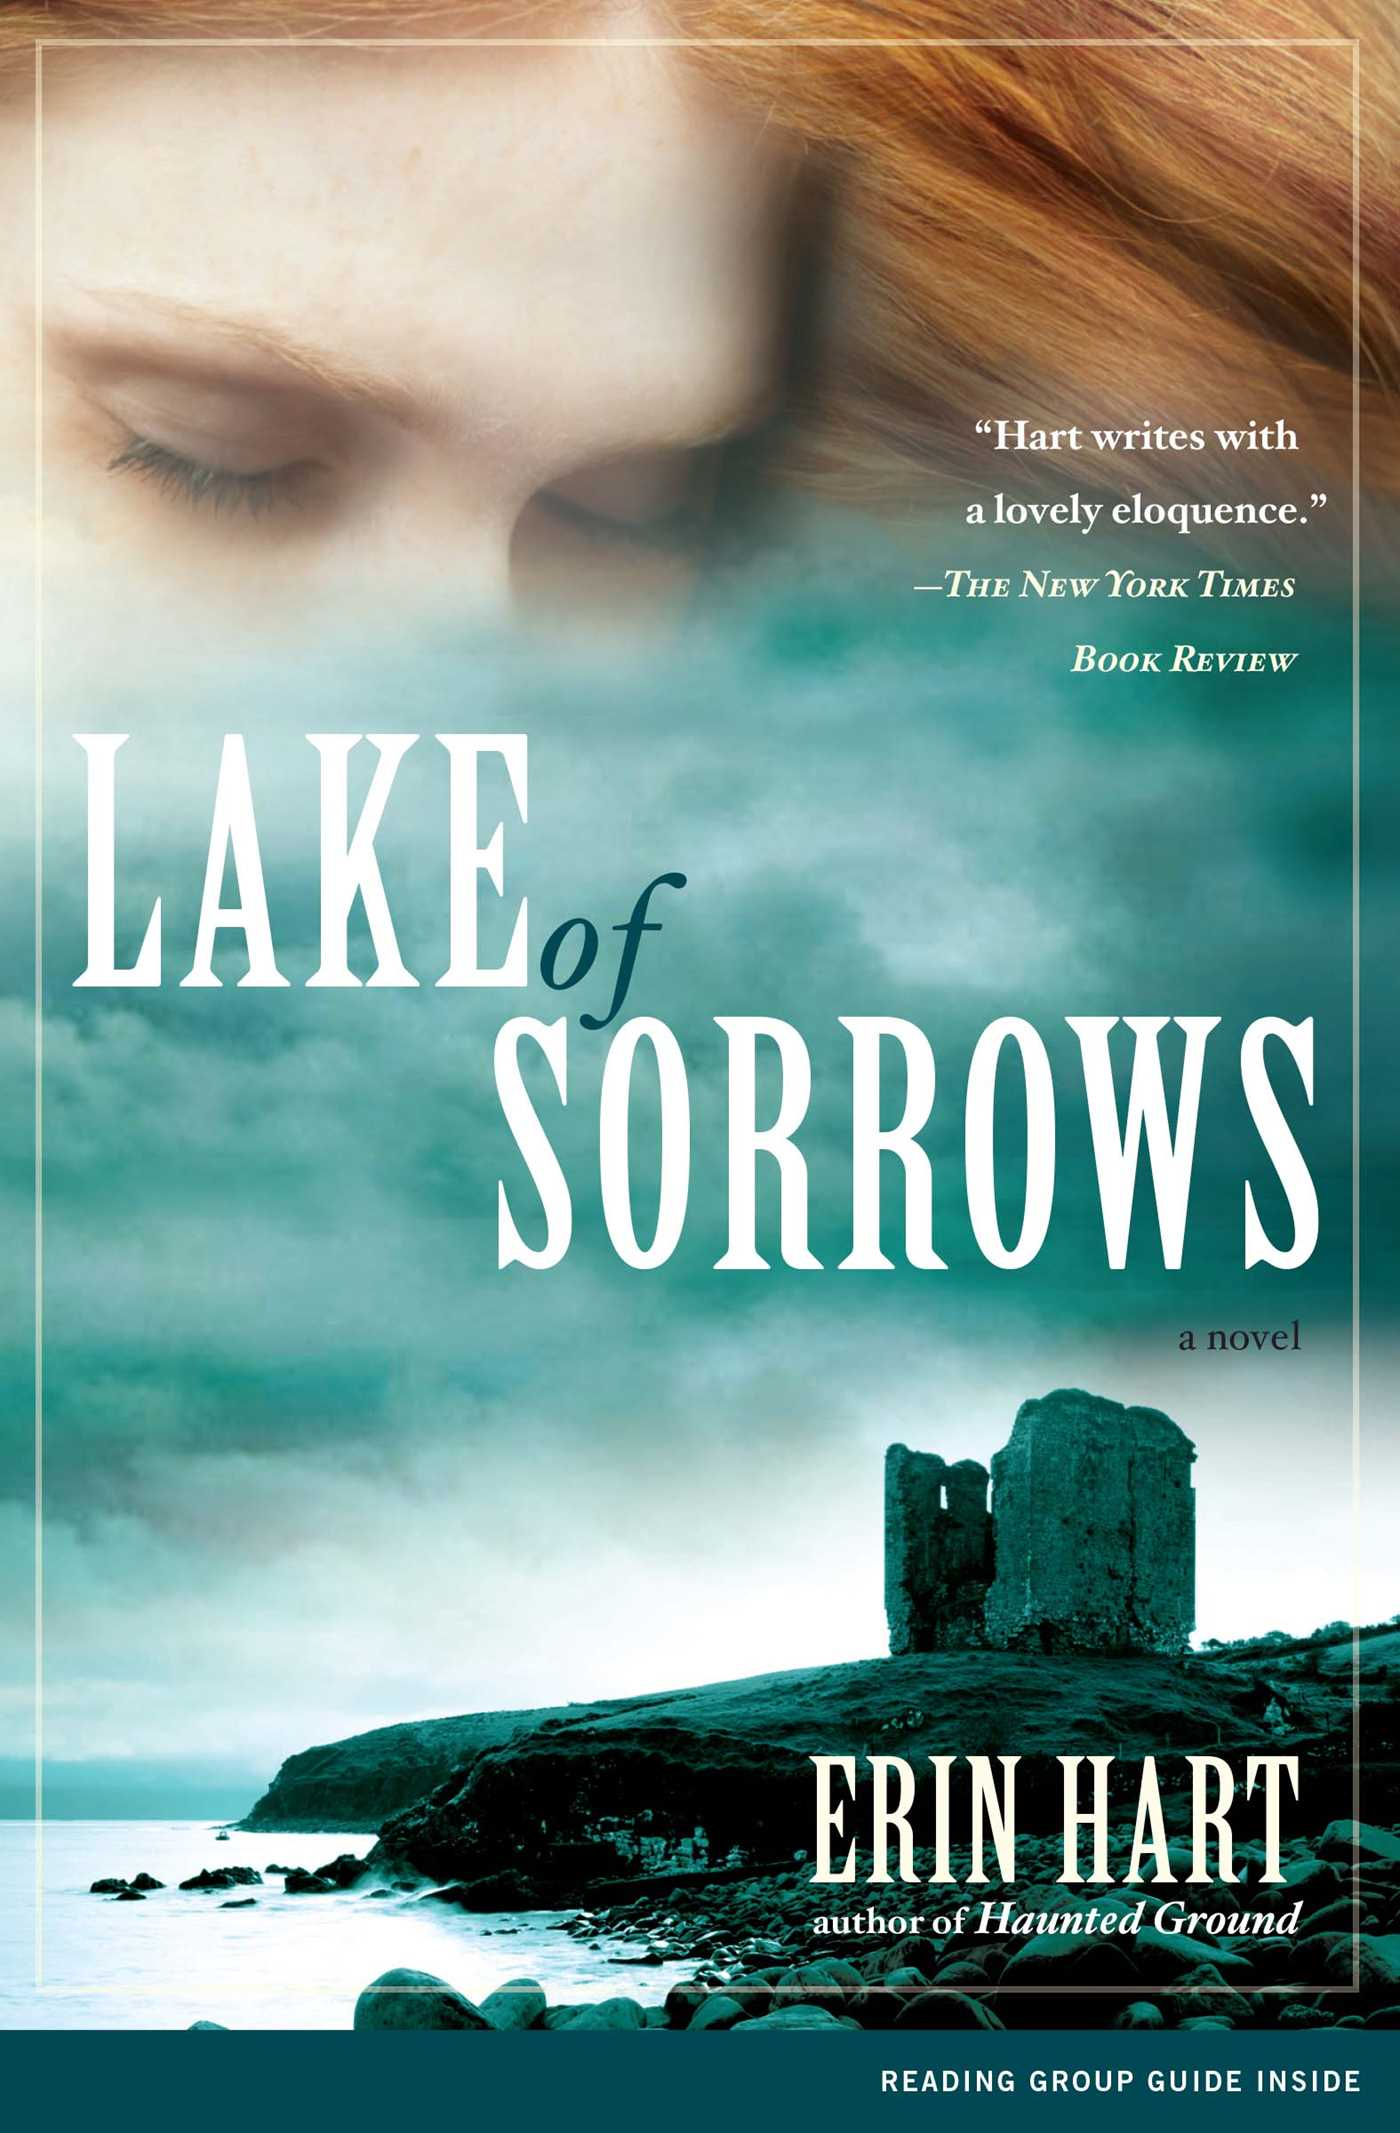 Lake-of-sorrows-9781416541301_hr